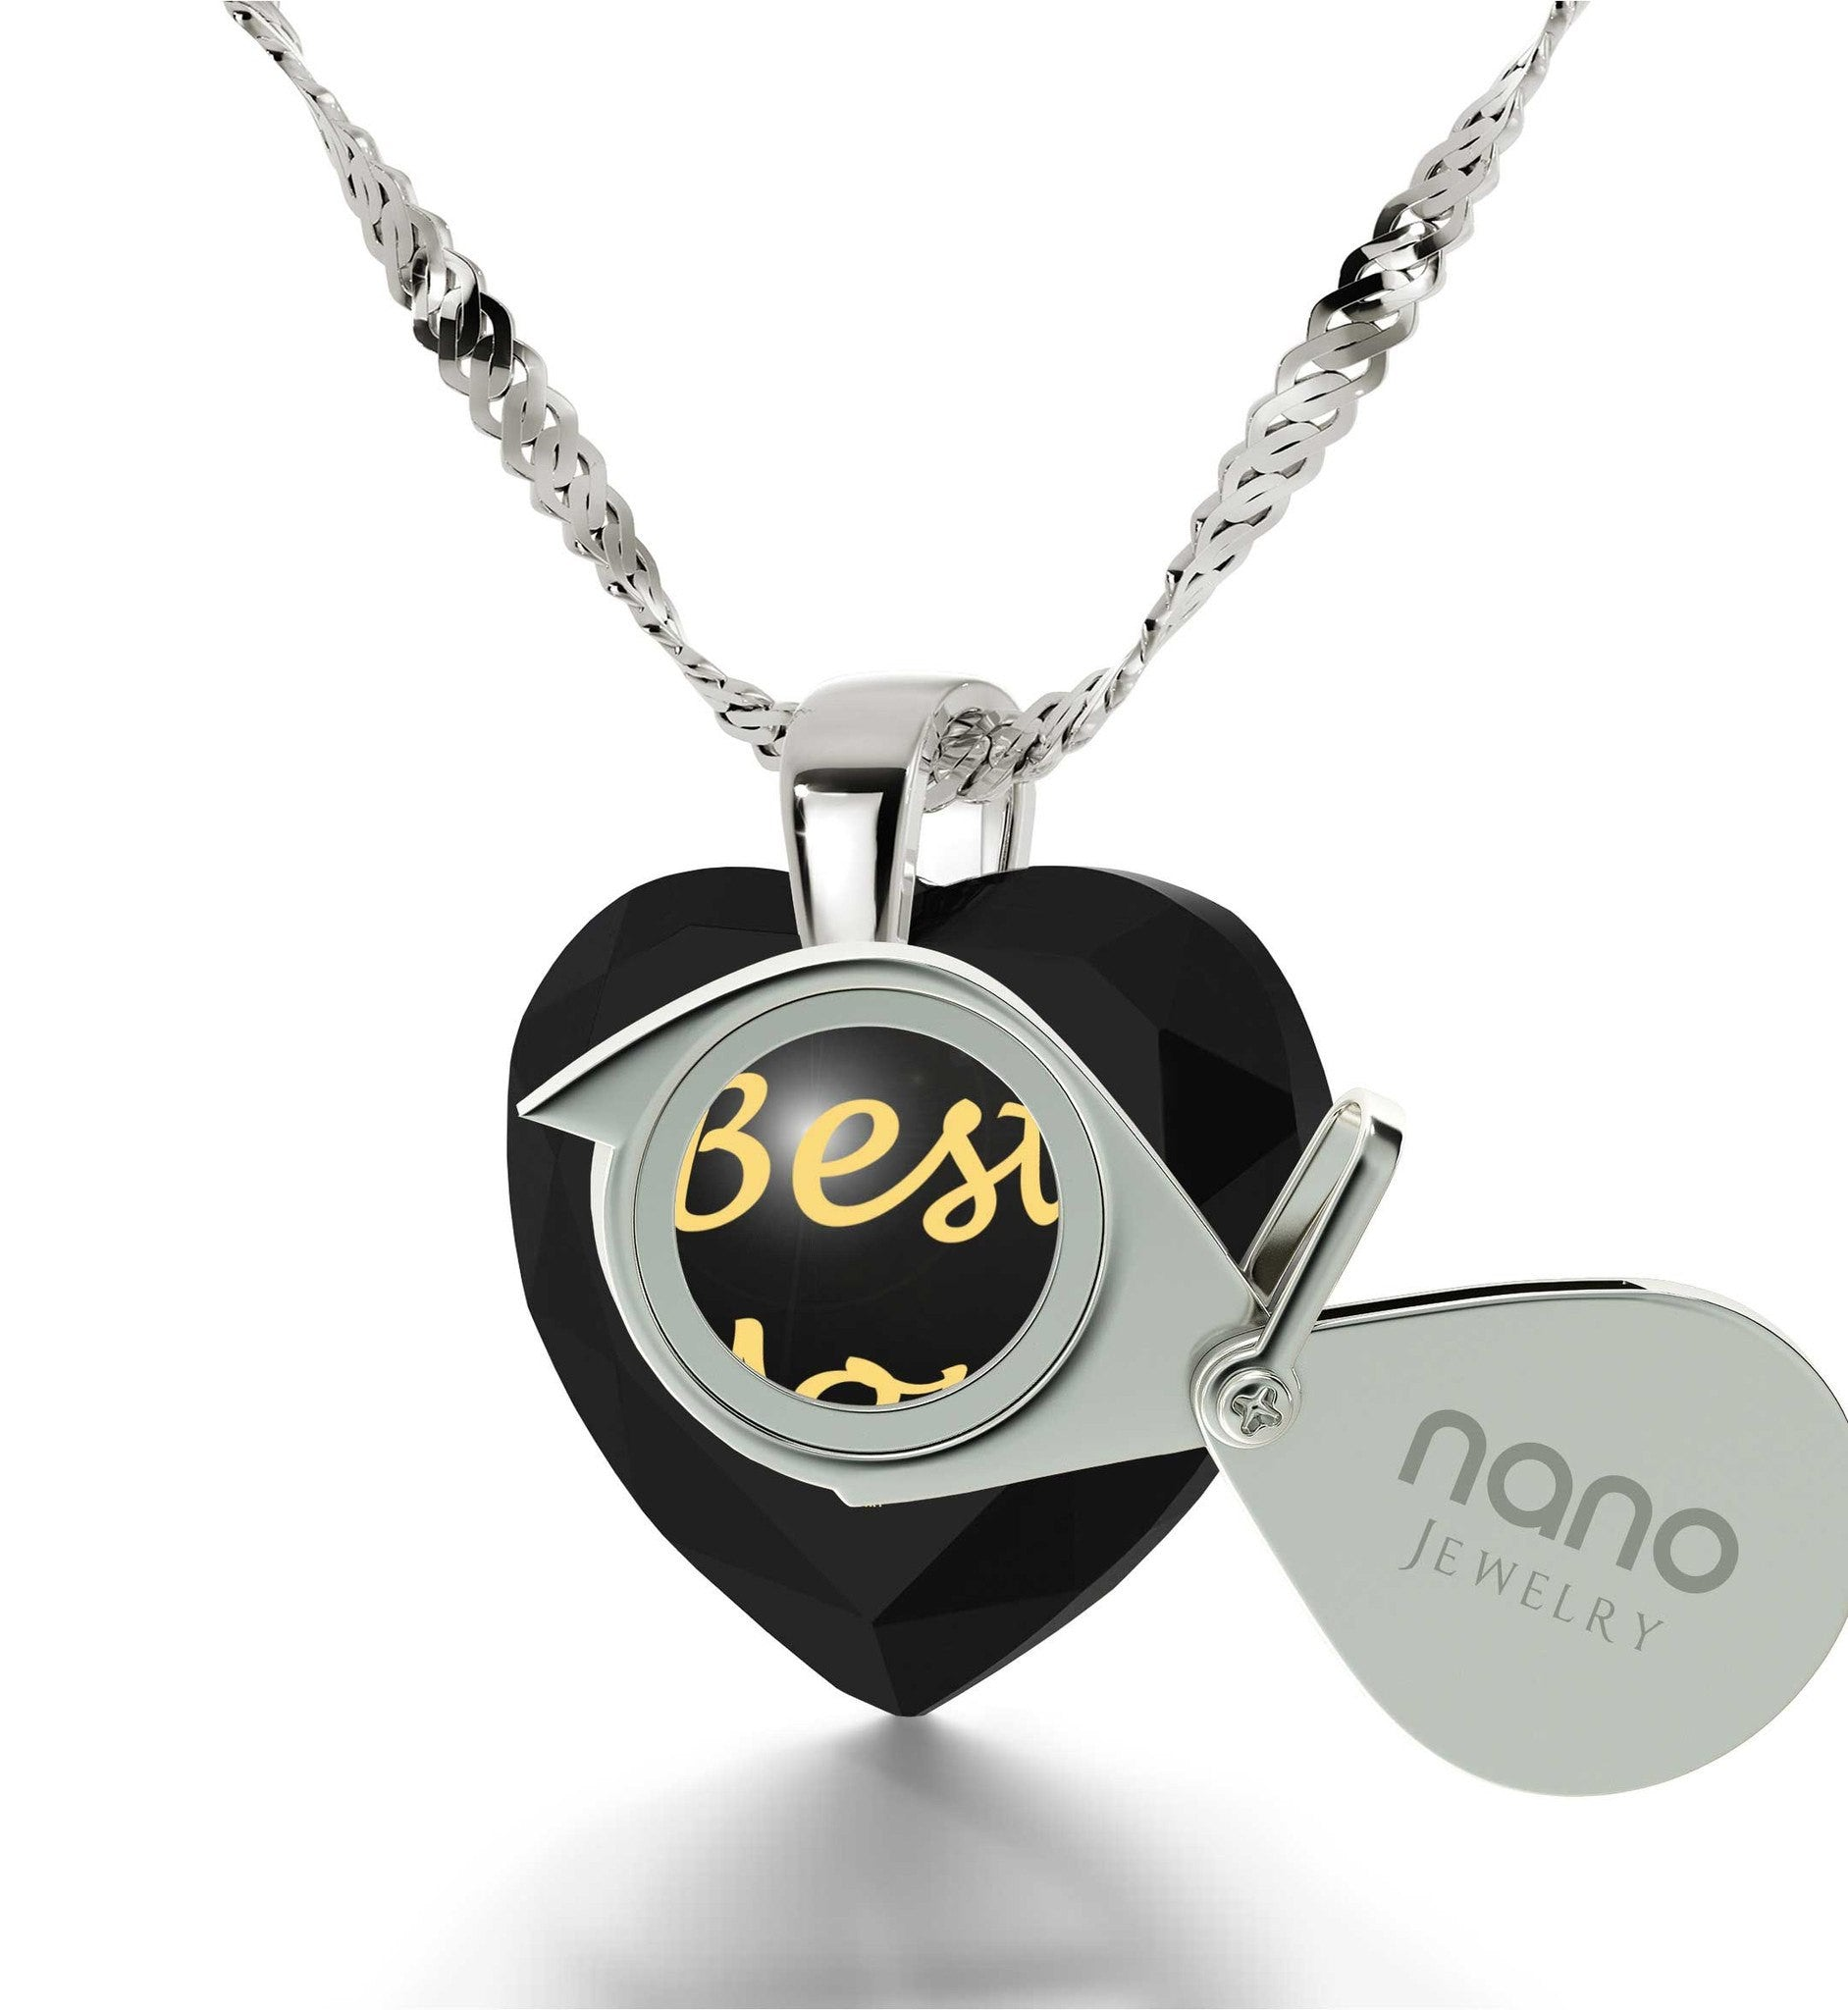 Presents for Mom Christmas,White Gold Filled Engraved Necklaces, Special Mother's Day Gifts